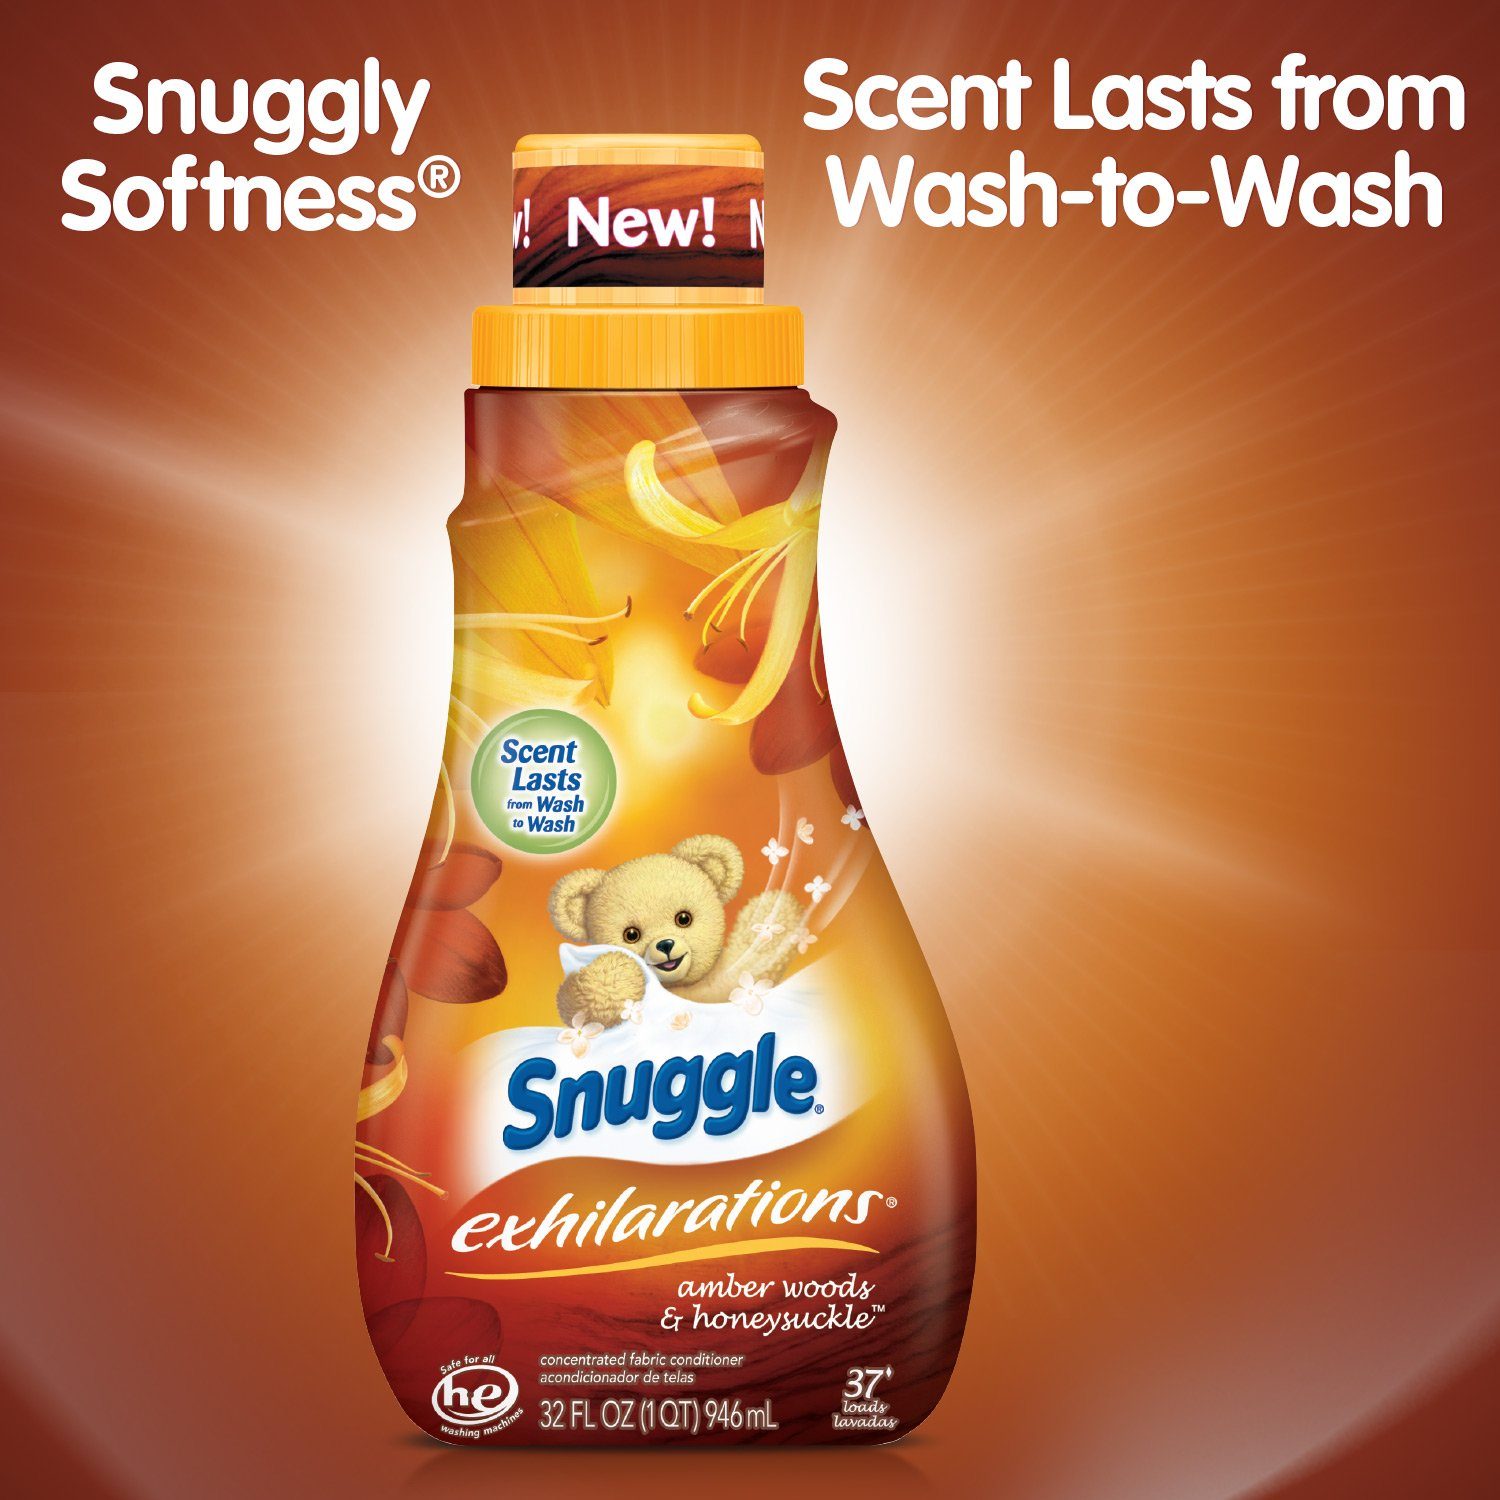 Snuggle Exhilarations Liquid Fabric Softener, Amber Woods & Honeysuckle, 32 Fluid Ounces (Pack of 9) by Snuggle (Image #4)